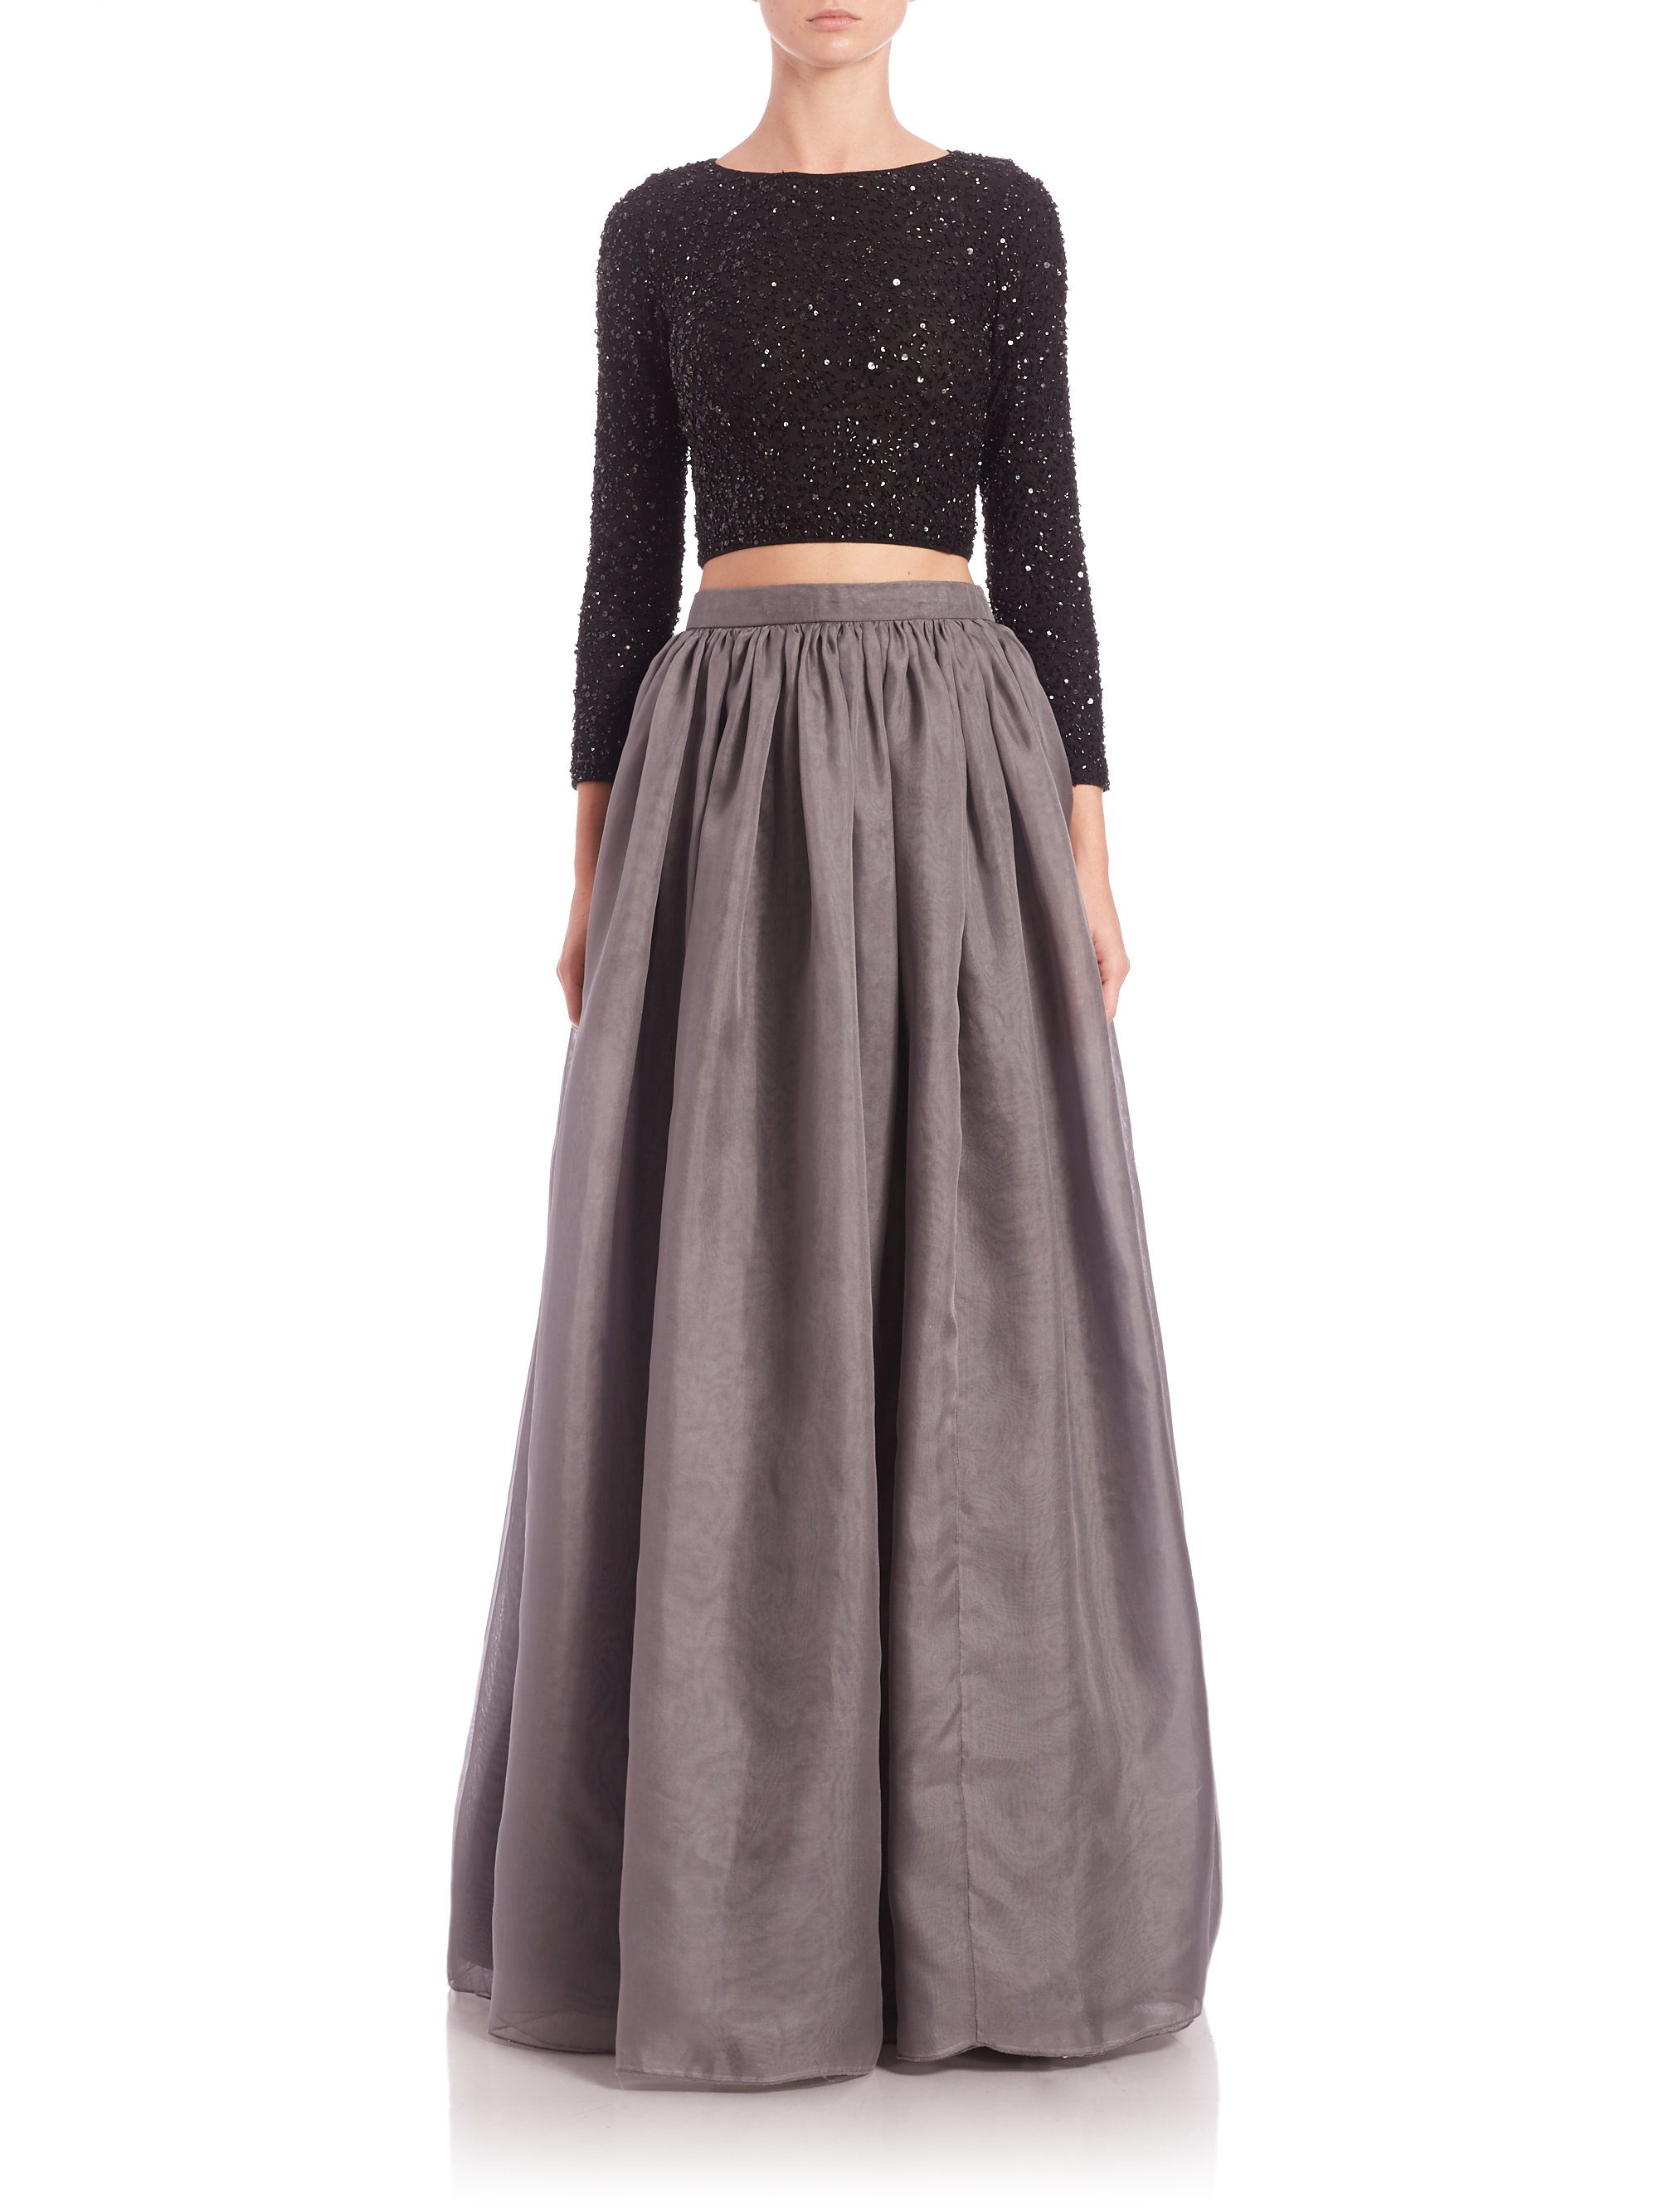 Alice   olivia Abella Silk Ball-gown Skirt in Gray | Lyst